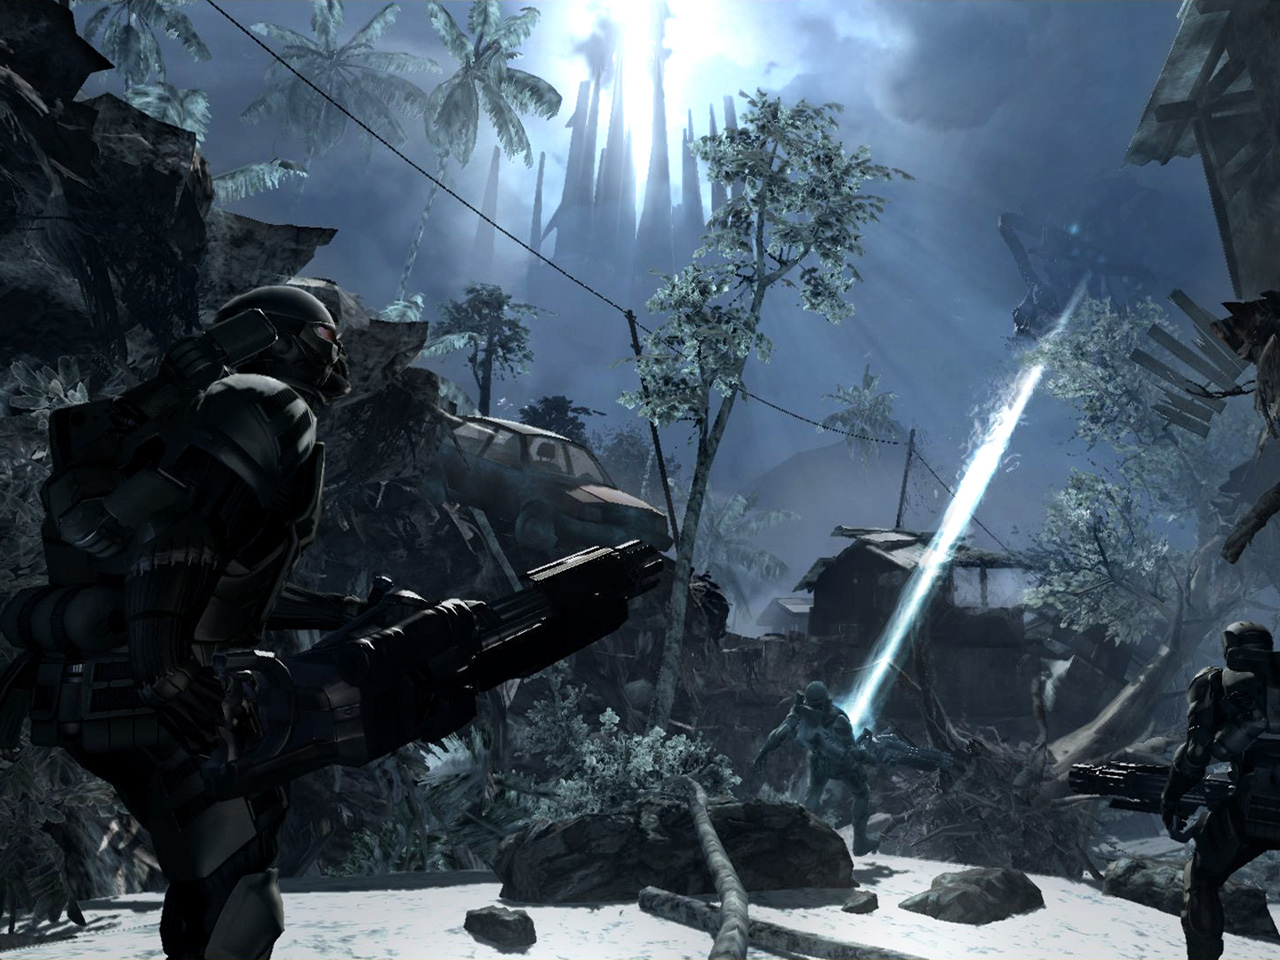 crysis images wallpapers hd wallpaper and background